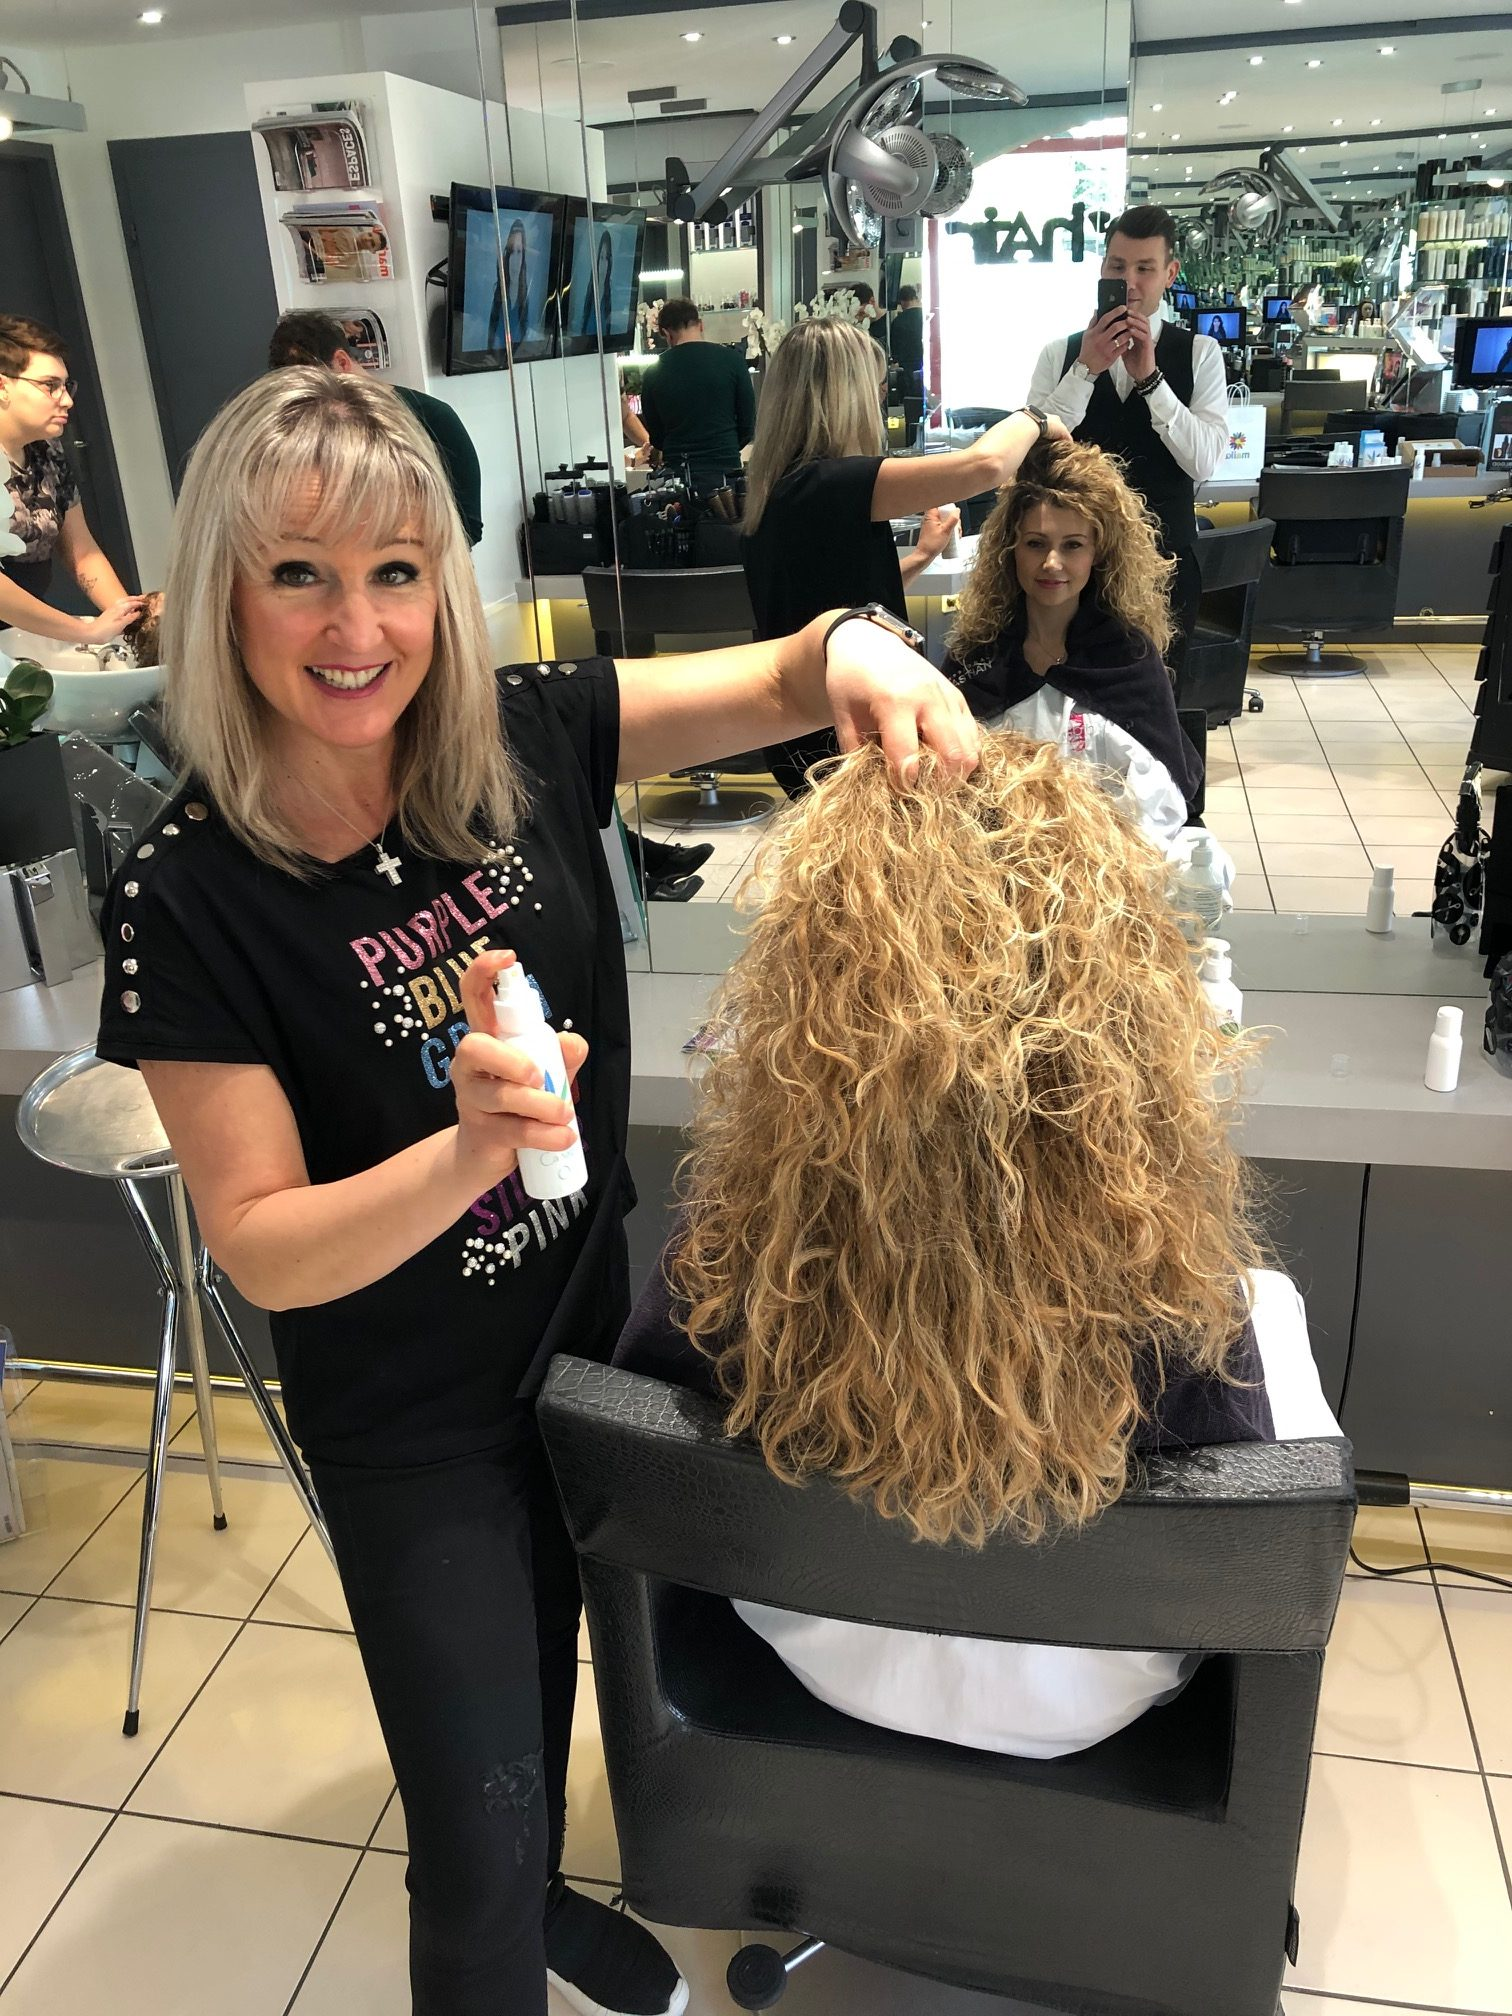 atmosp'hair-coiffeur-lutry-lausanne-couleur-meches